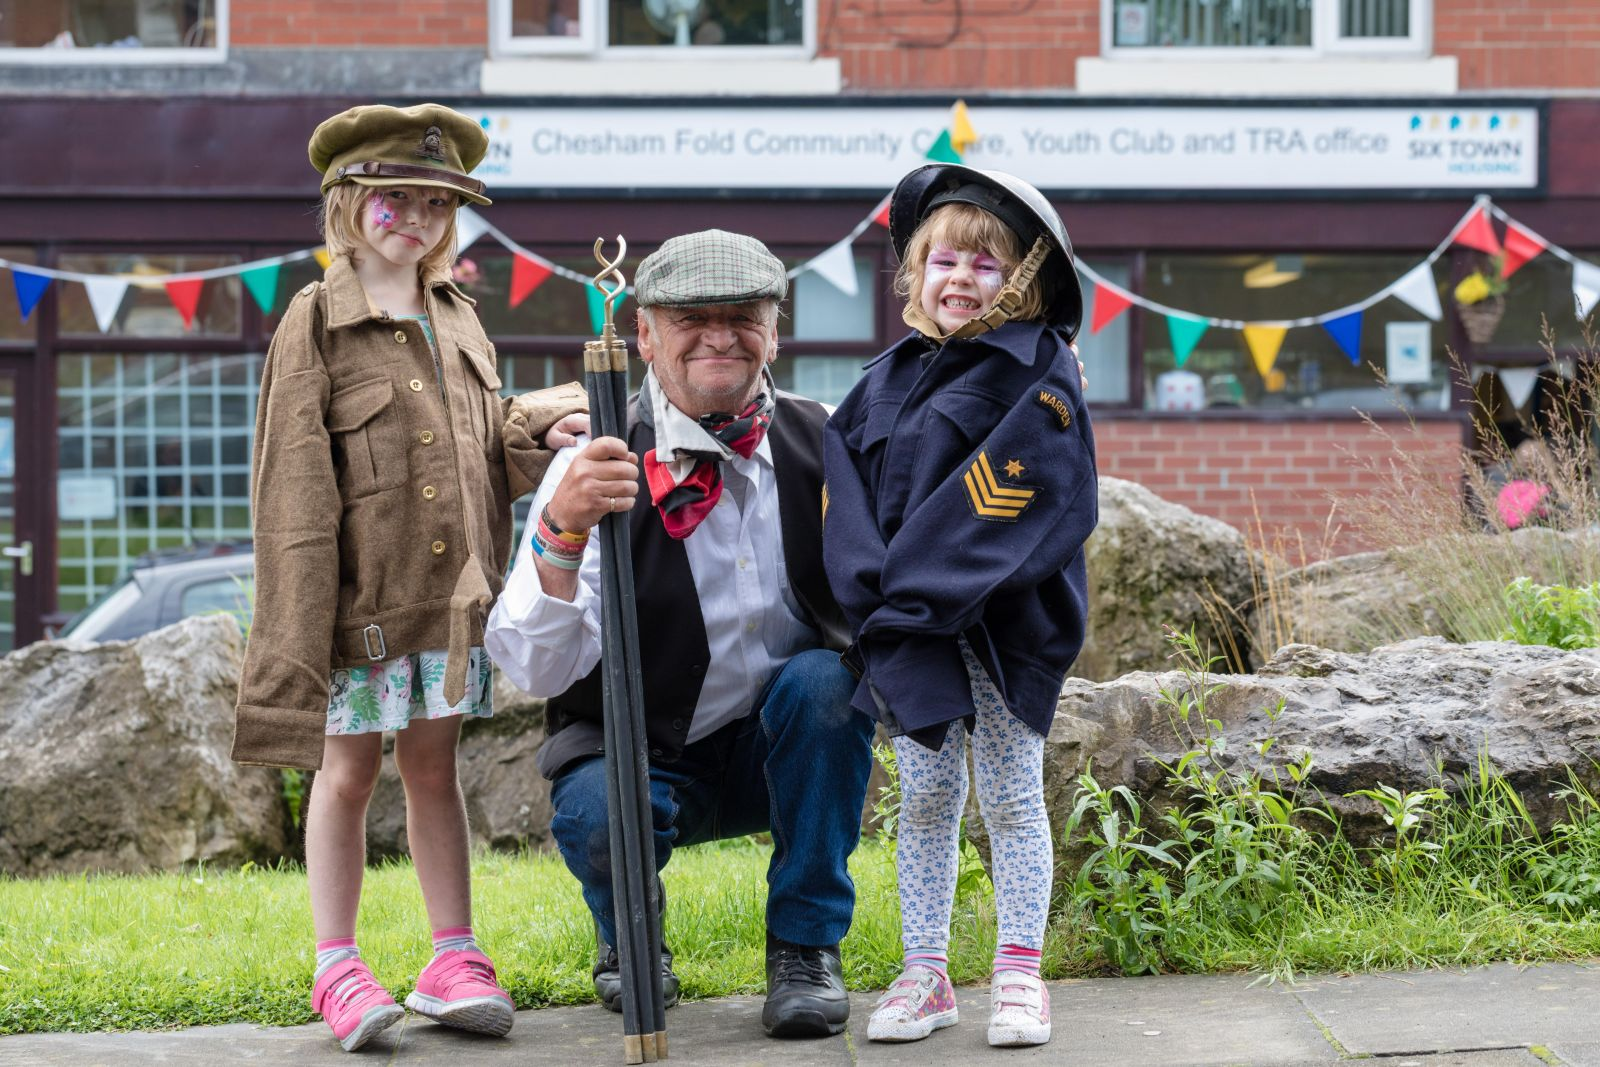 Vintage fun at Chesham Fold TRA event